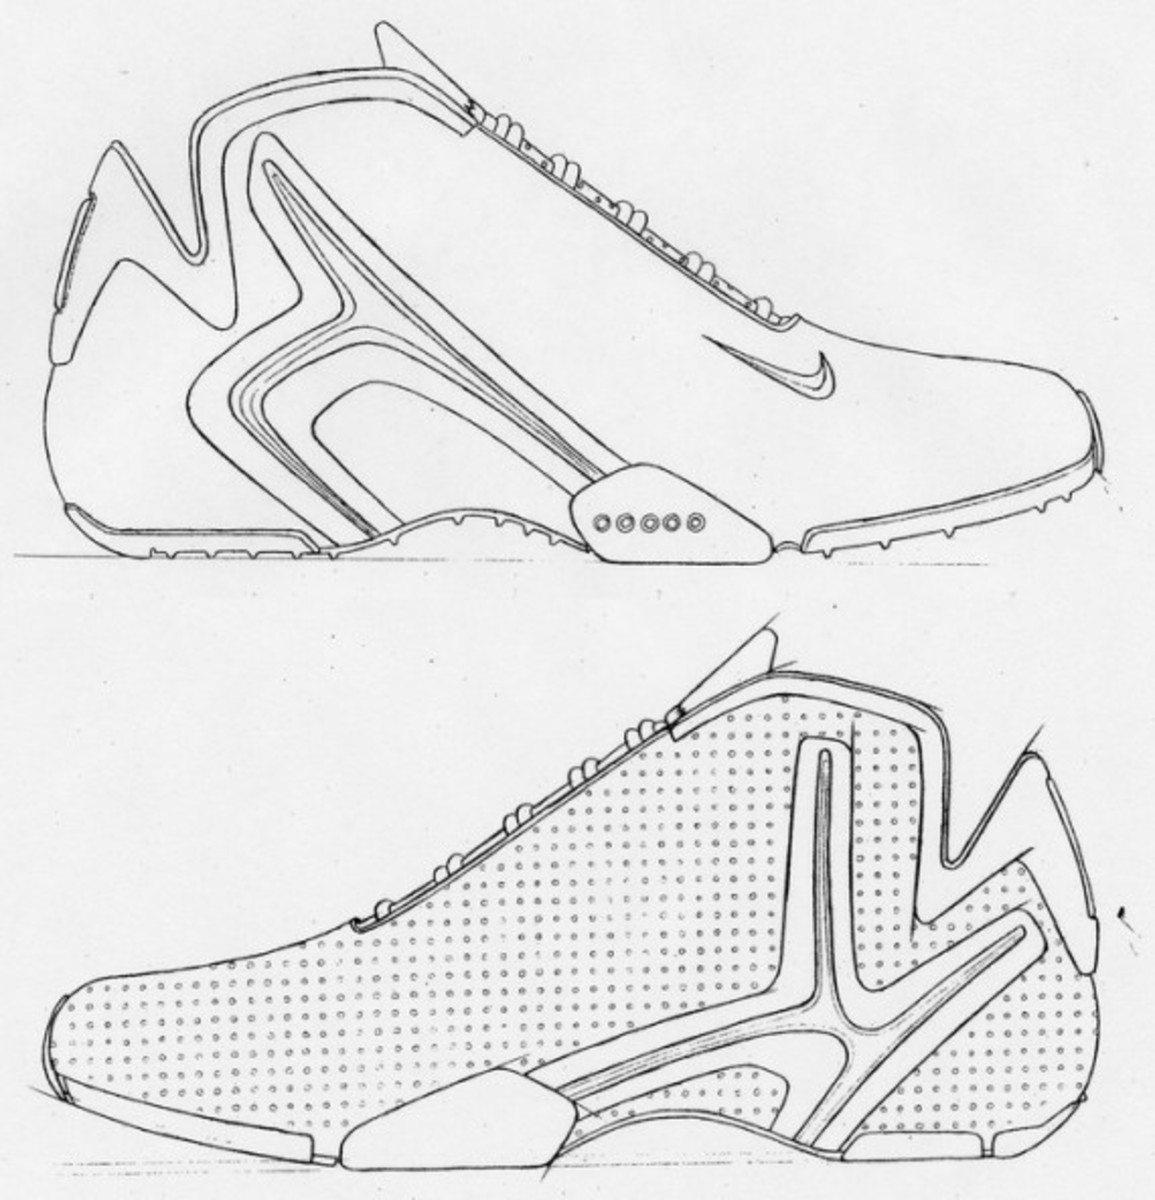 nike-basketball-1992-2012-nike-air-hyperflight-2001-10